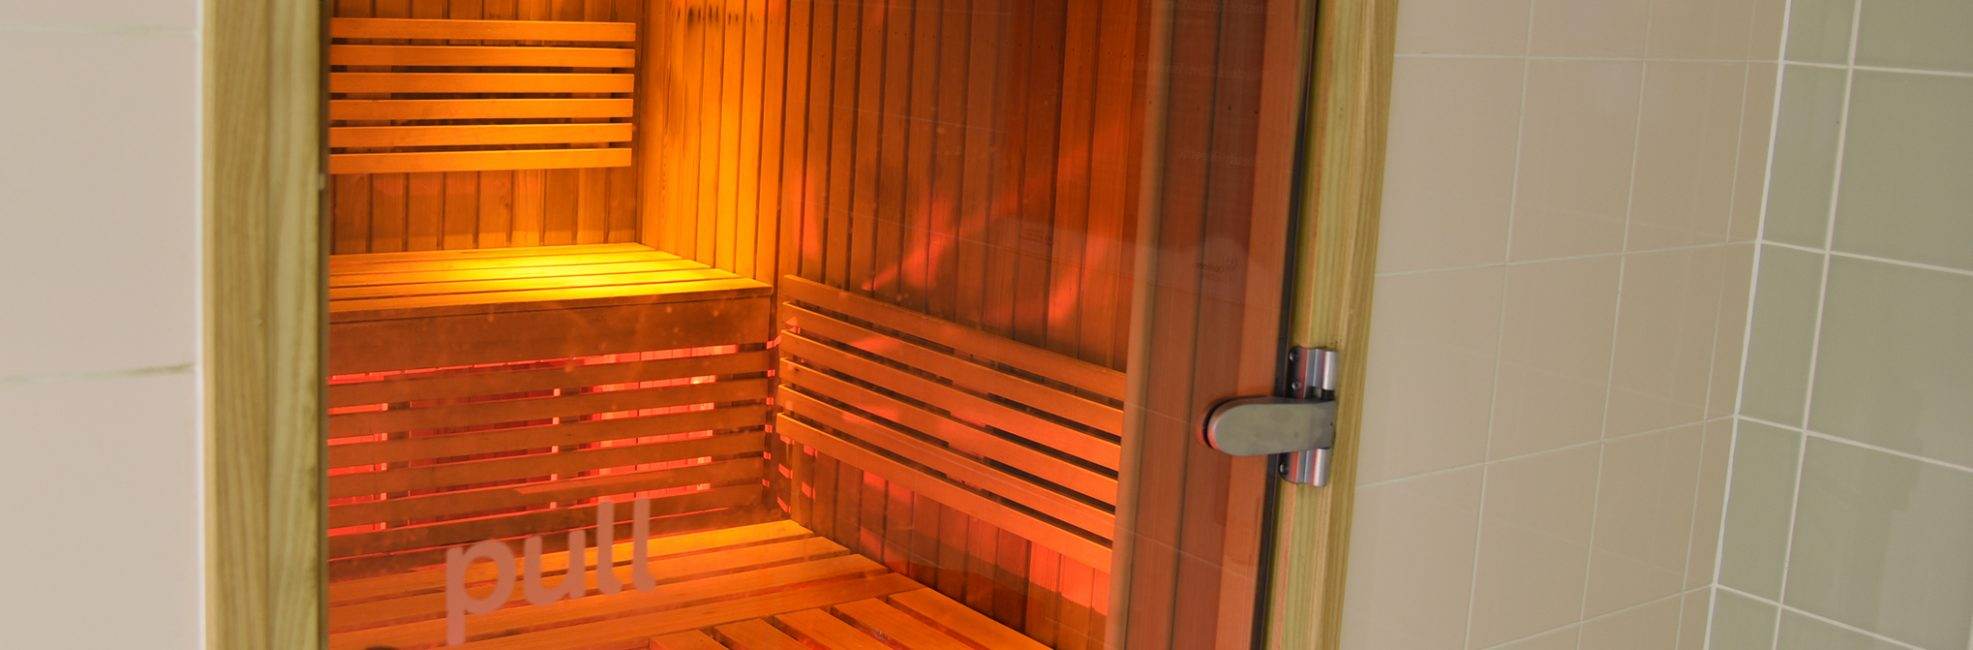 Saddleworth pool leisure exercise classes gym sauna